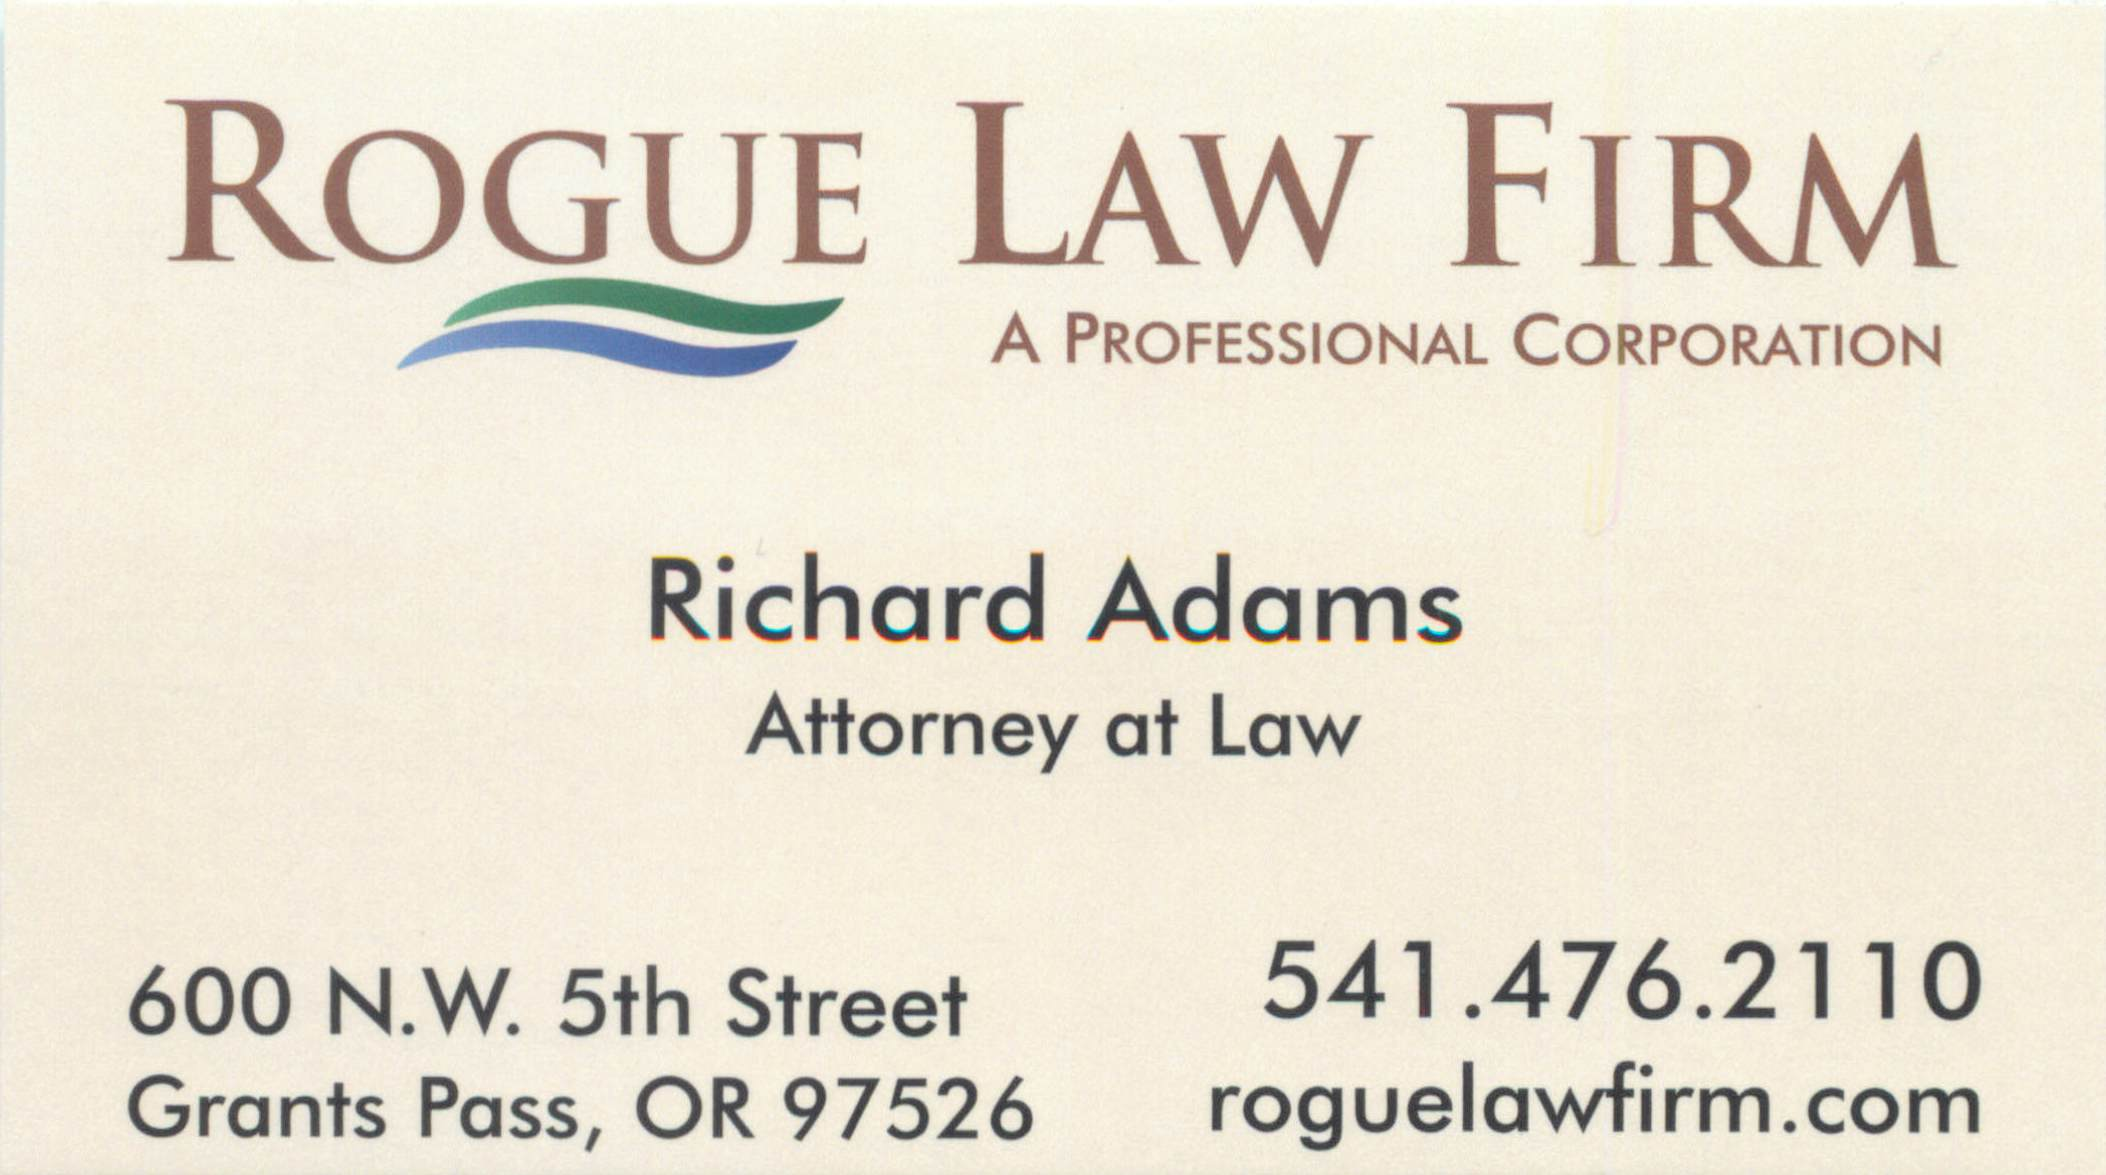 Copy of Business Card.jpg